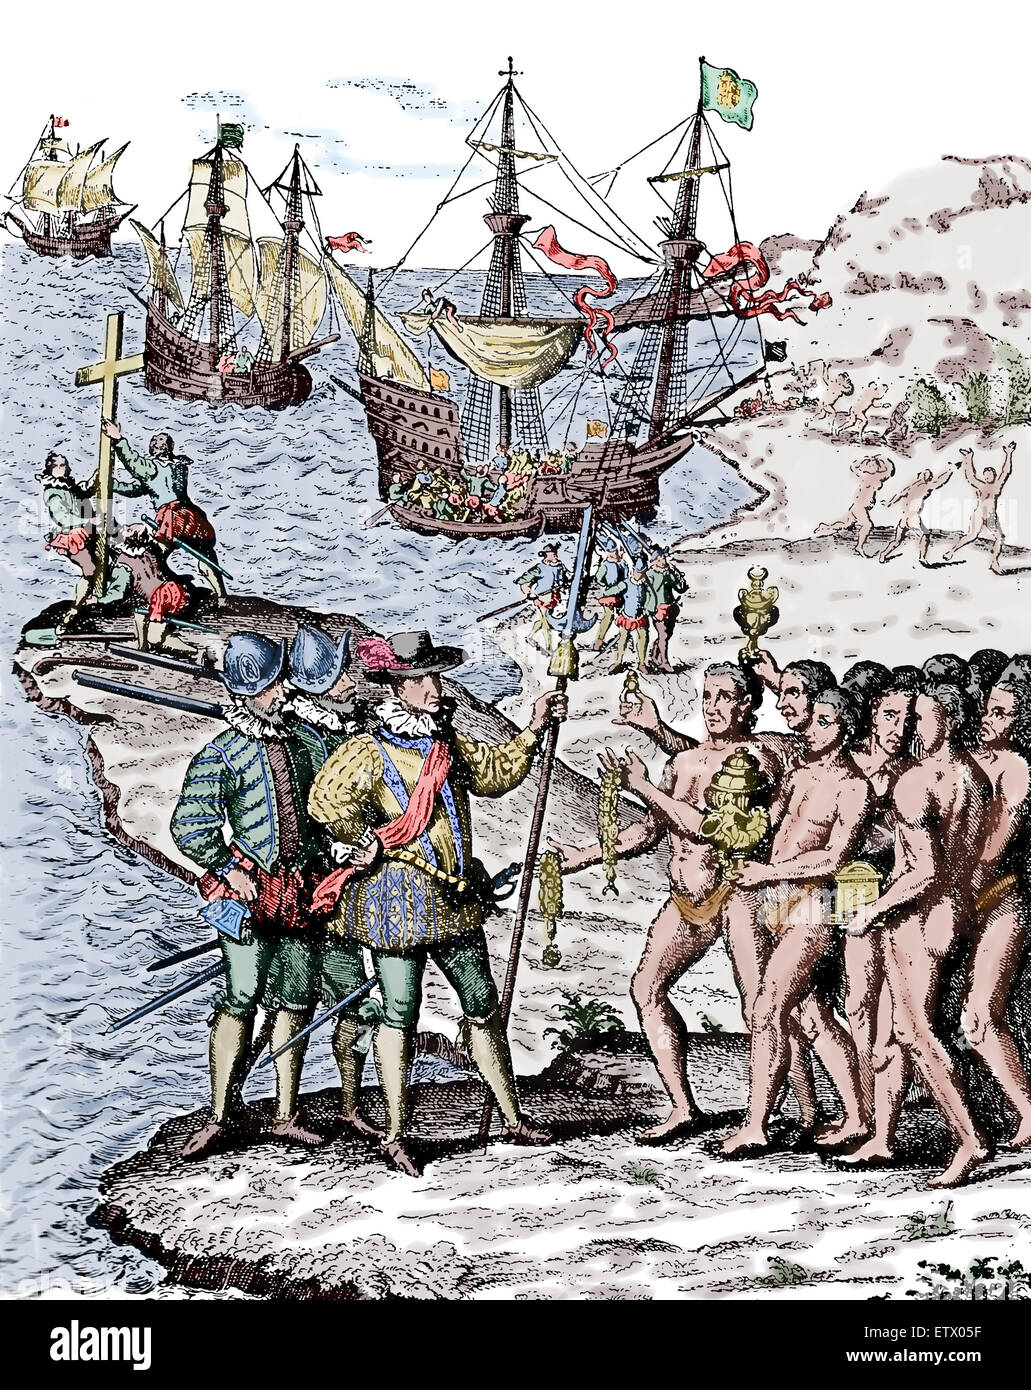 "Engraving by Theodore de Bry, 1592. Formed part of his ""America series"",  showing Christopher Columbus landing on the Hispaniola."